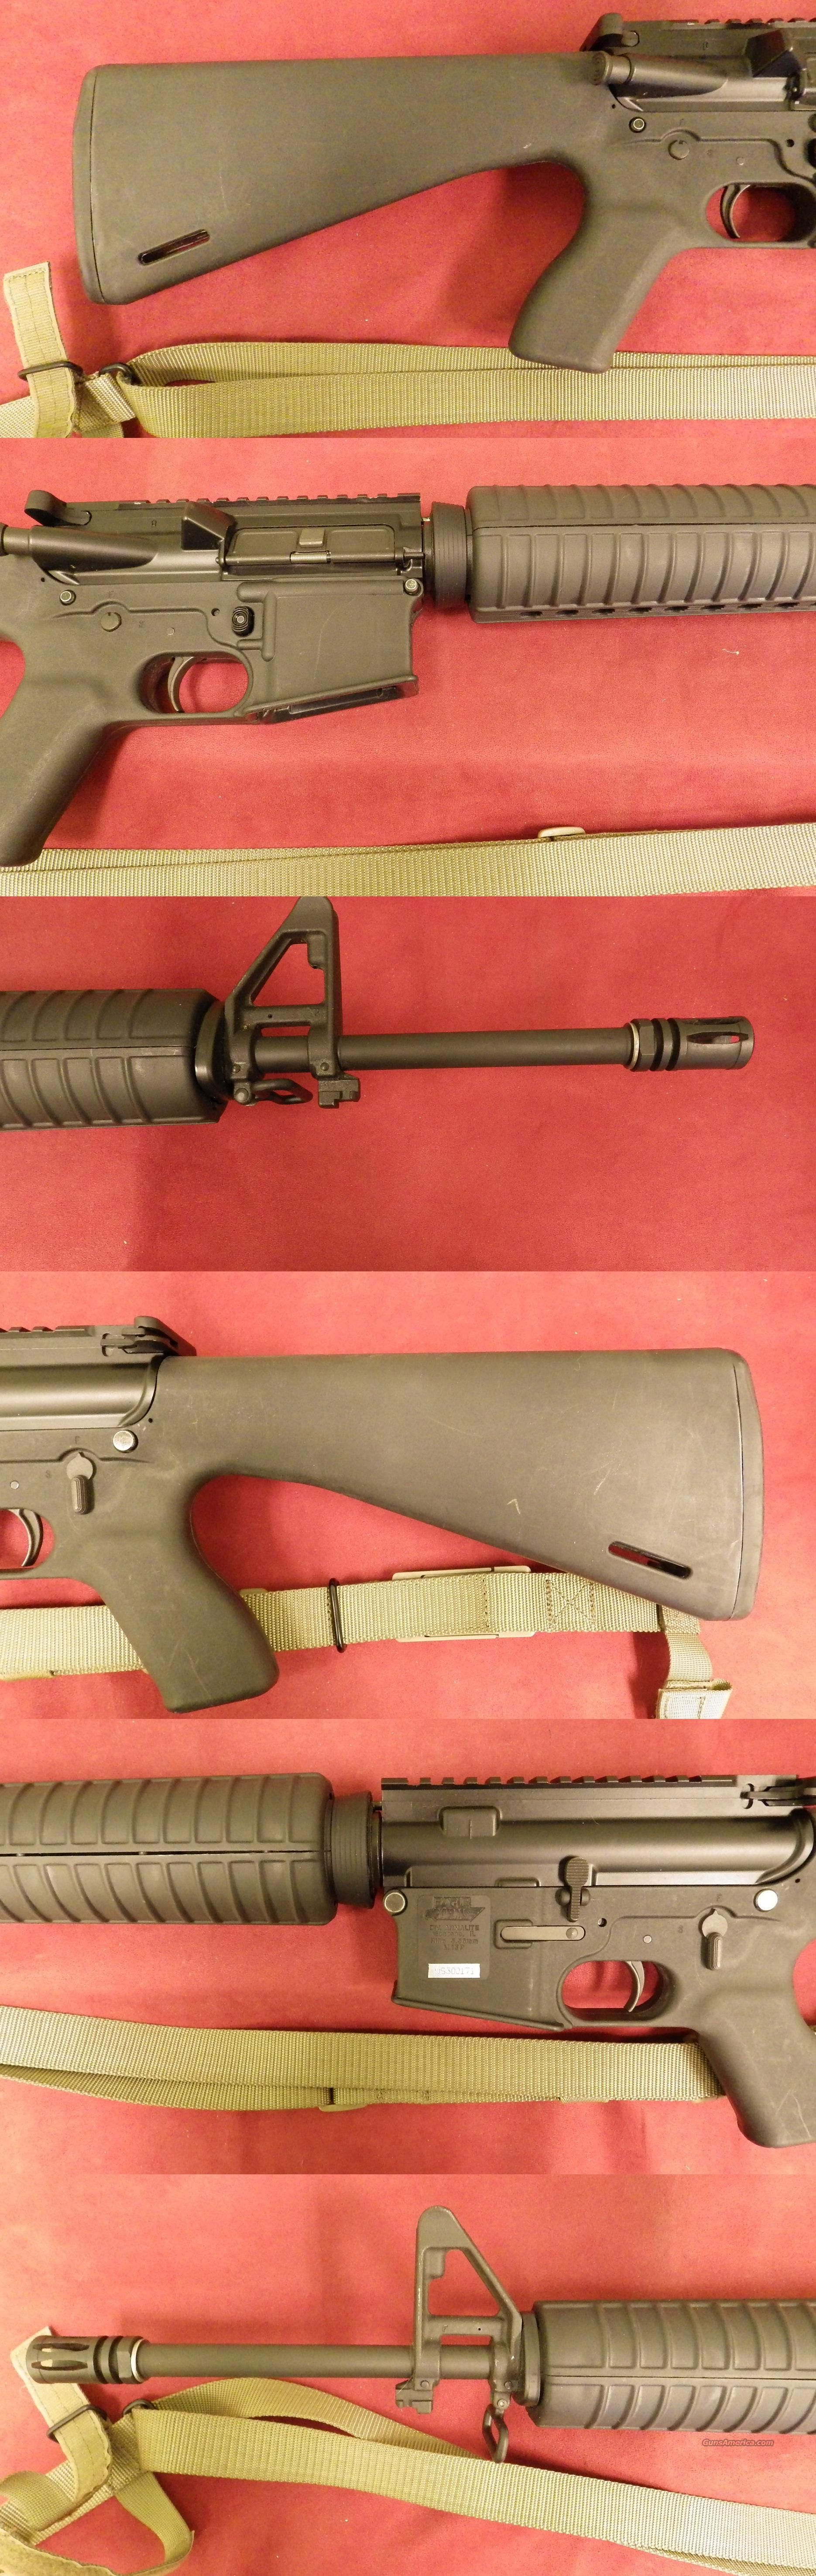 Eagle Arms By Armalite 5.56 NATO *MUST CALL*  Guns > Rifles > Armalite Rifles > Complete Rifles